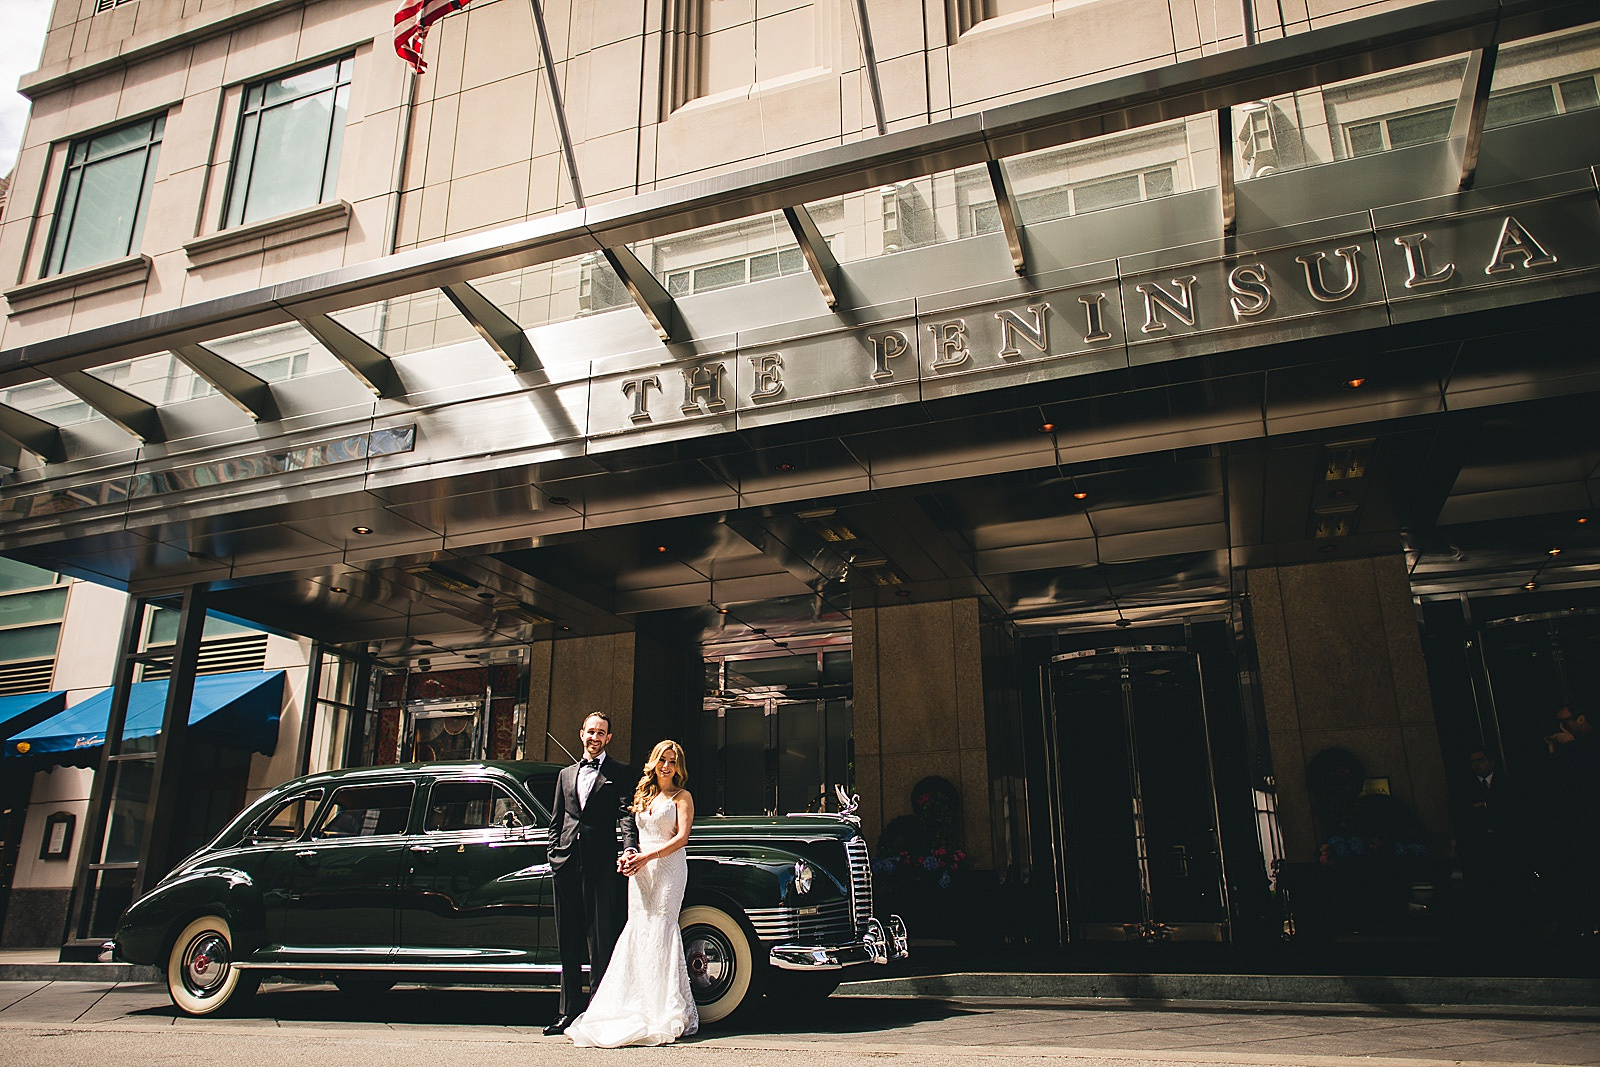 23 amazing car at wedding - Susie + Eric's Jewish Wedding at the Peninsula Hotel in Chicago